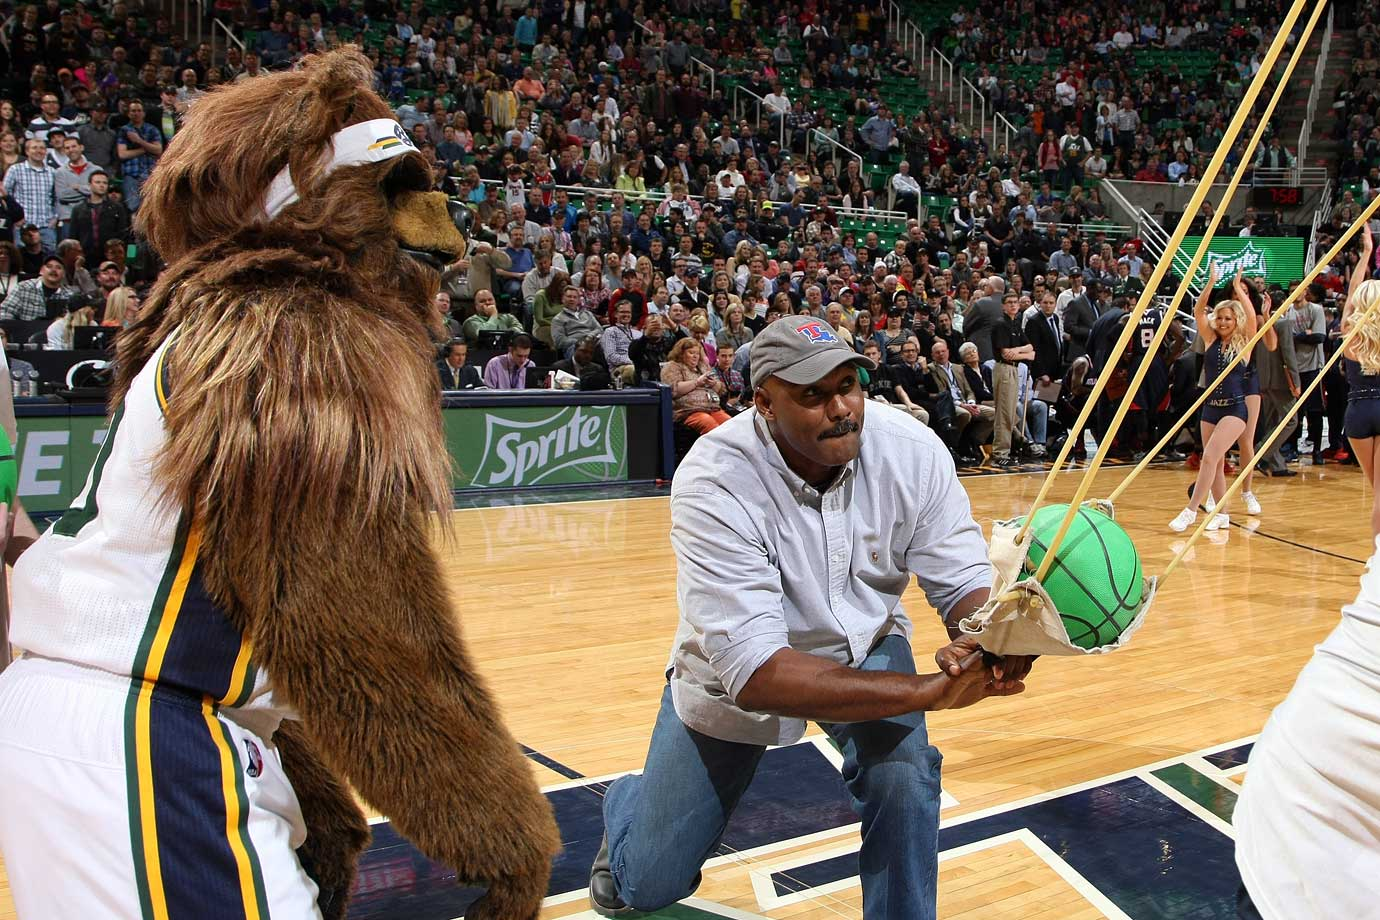 Karl Malone shoots balls into the crowd with help from Utah's mascot Jazz Bear during a break in play.